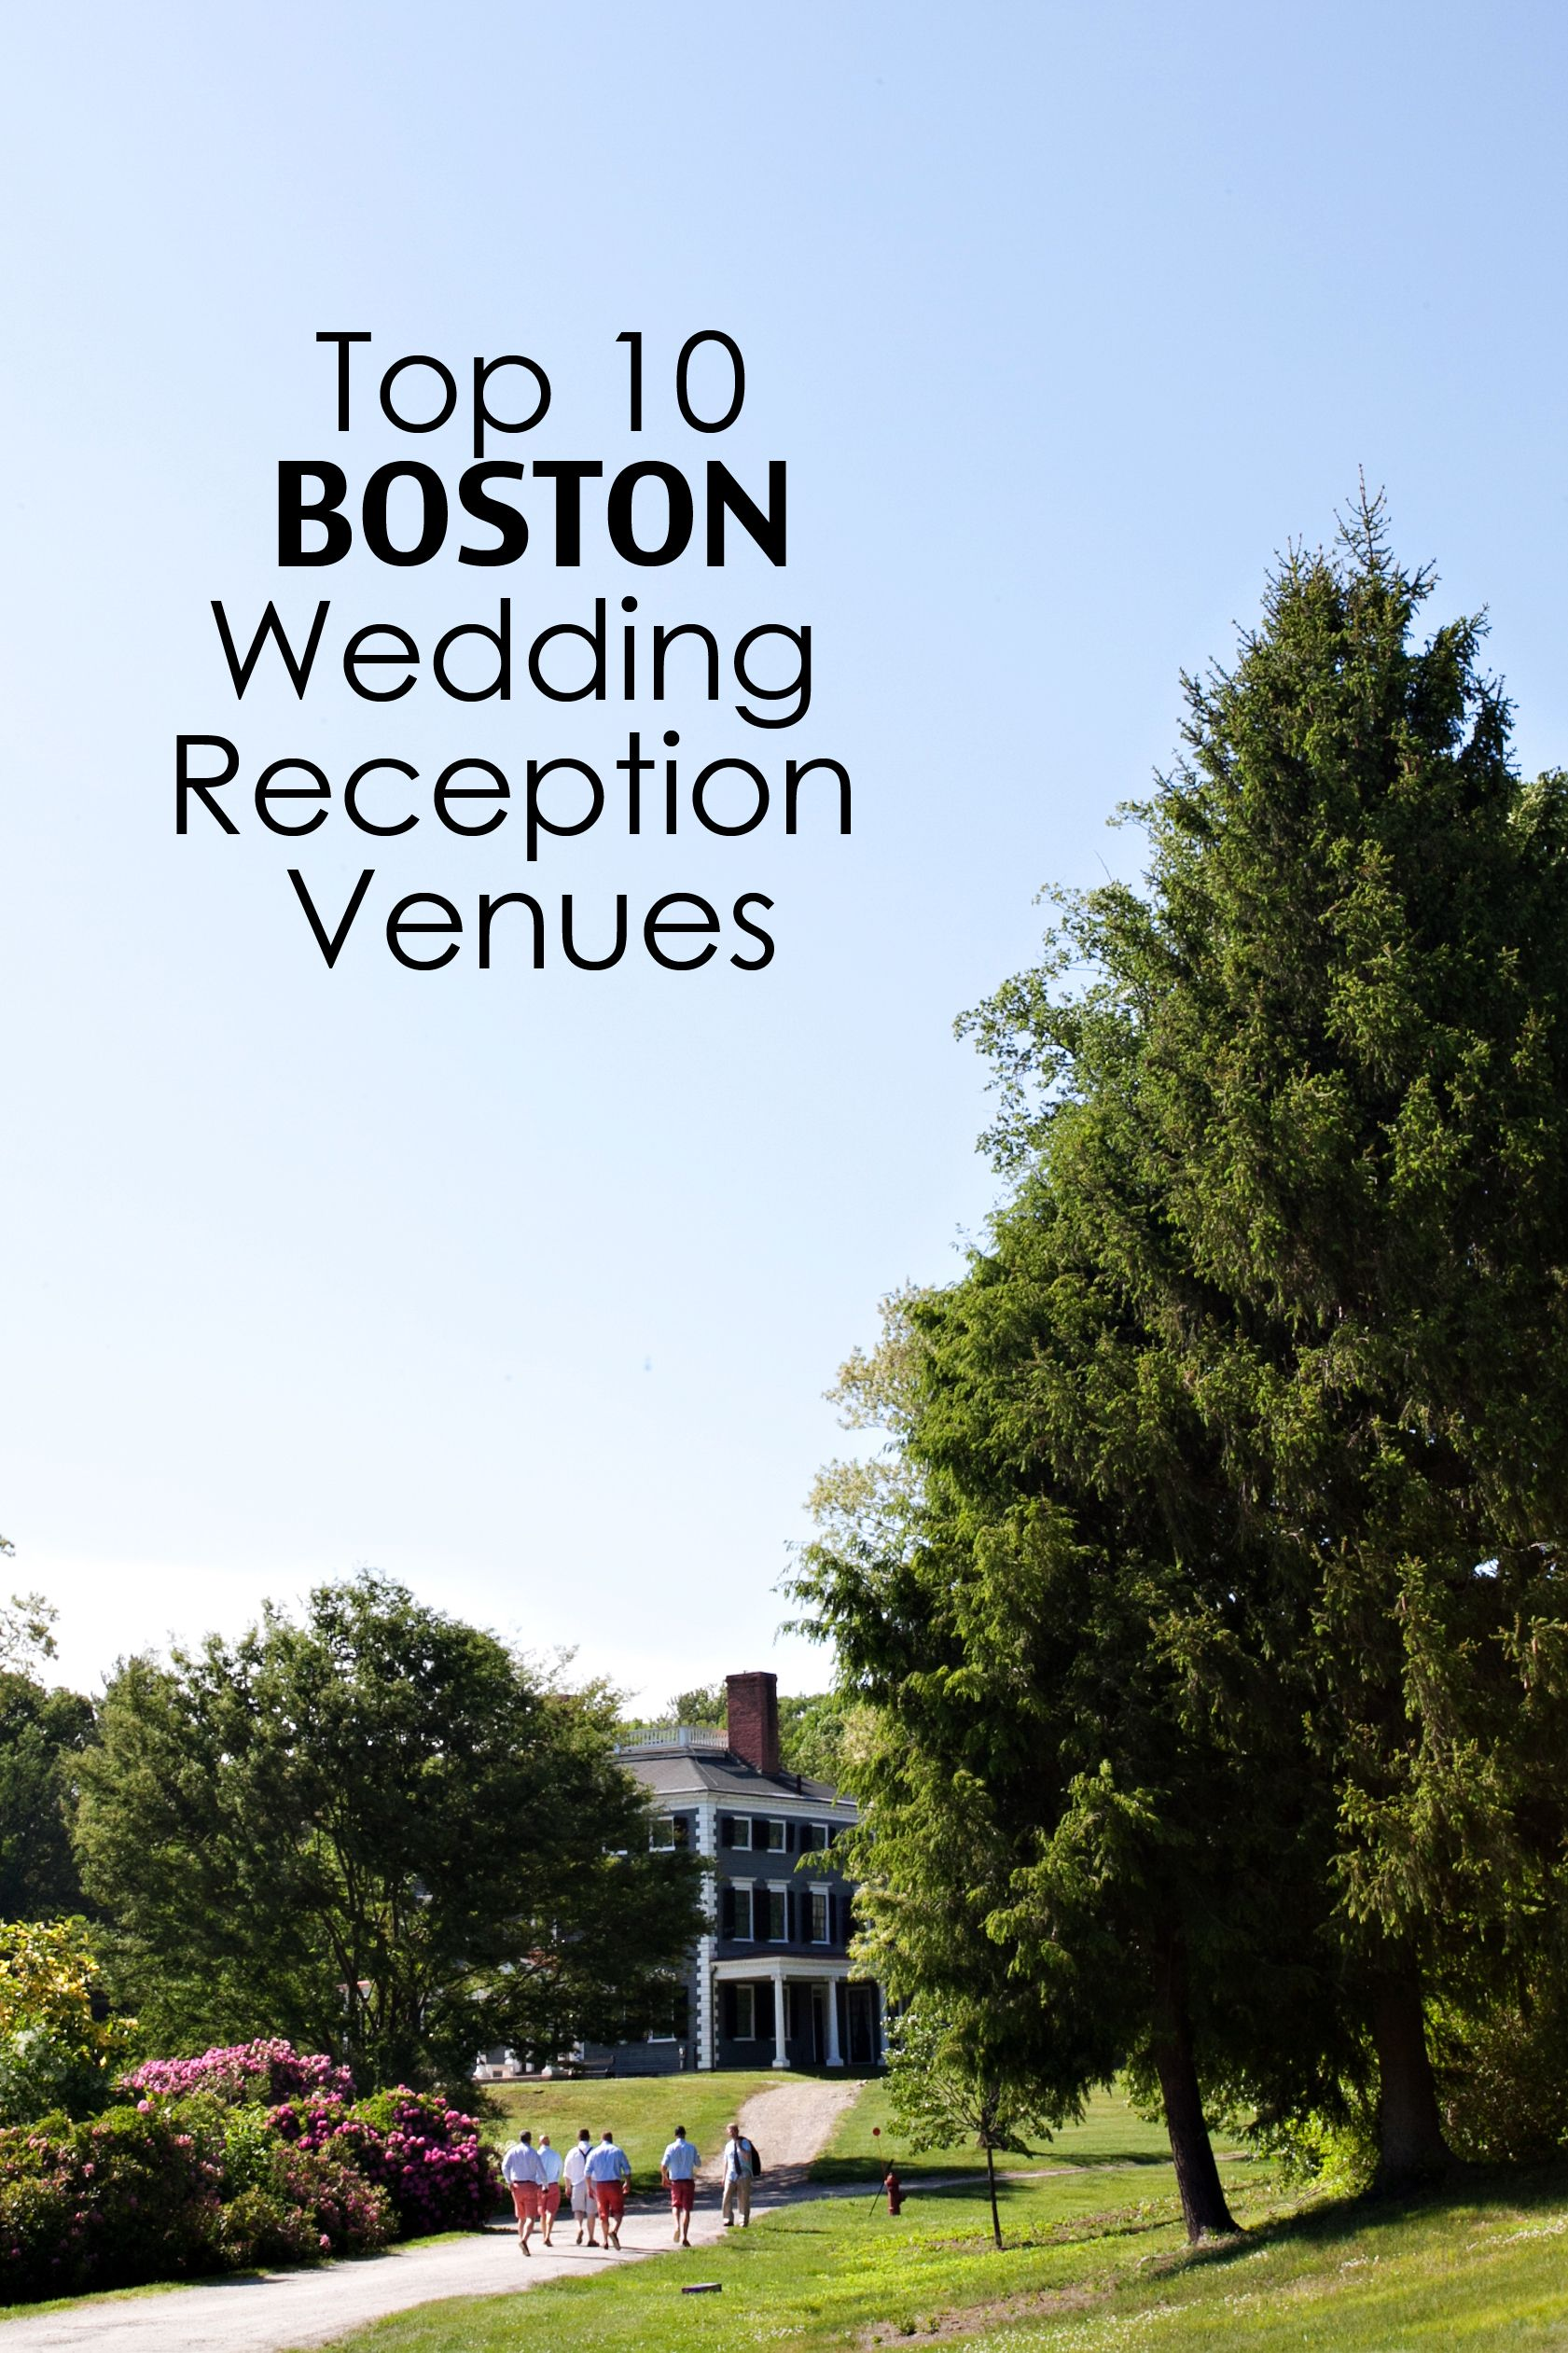 Top 10 Boston Wedding Venues